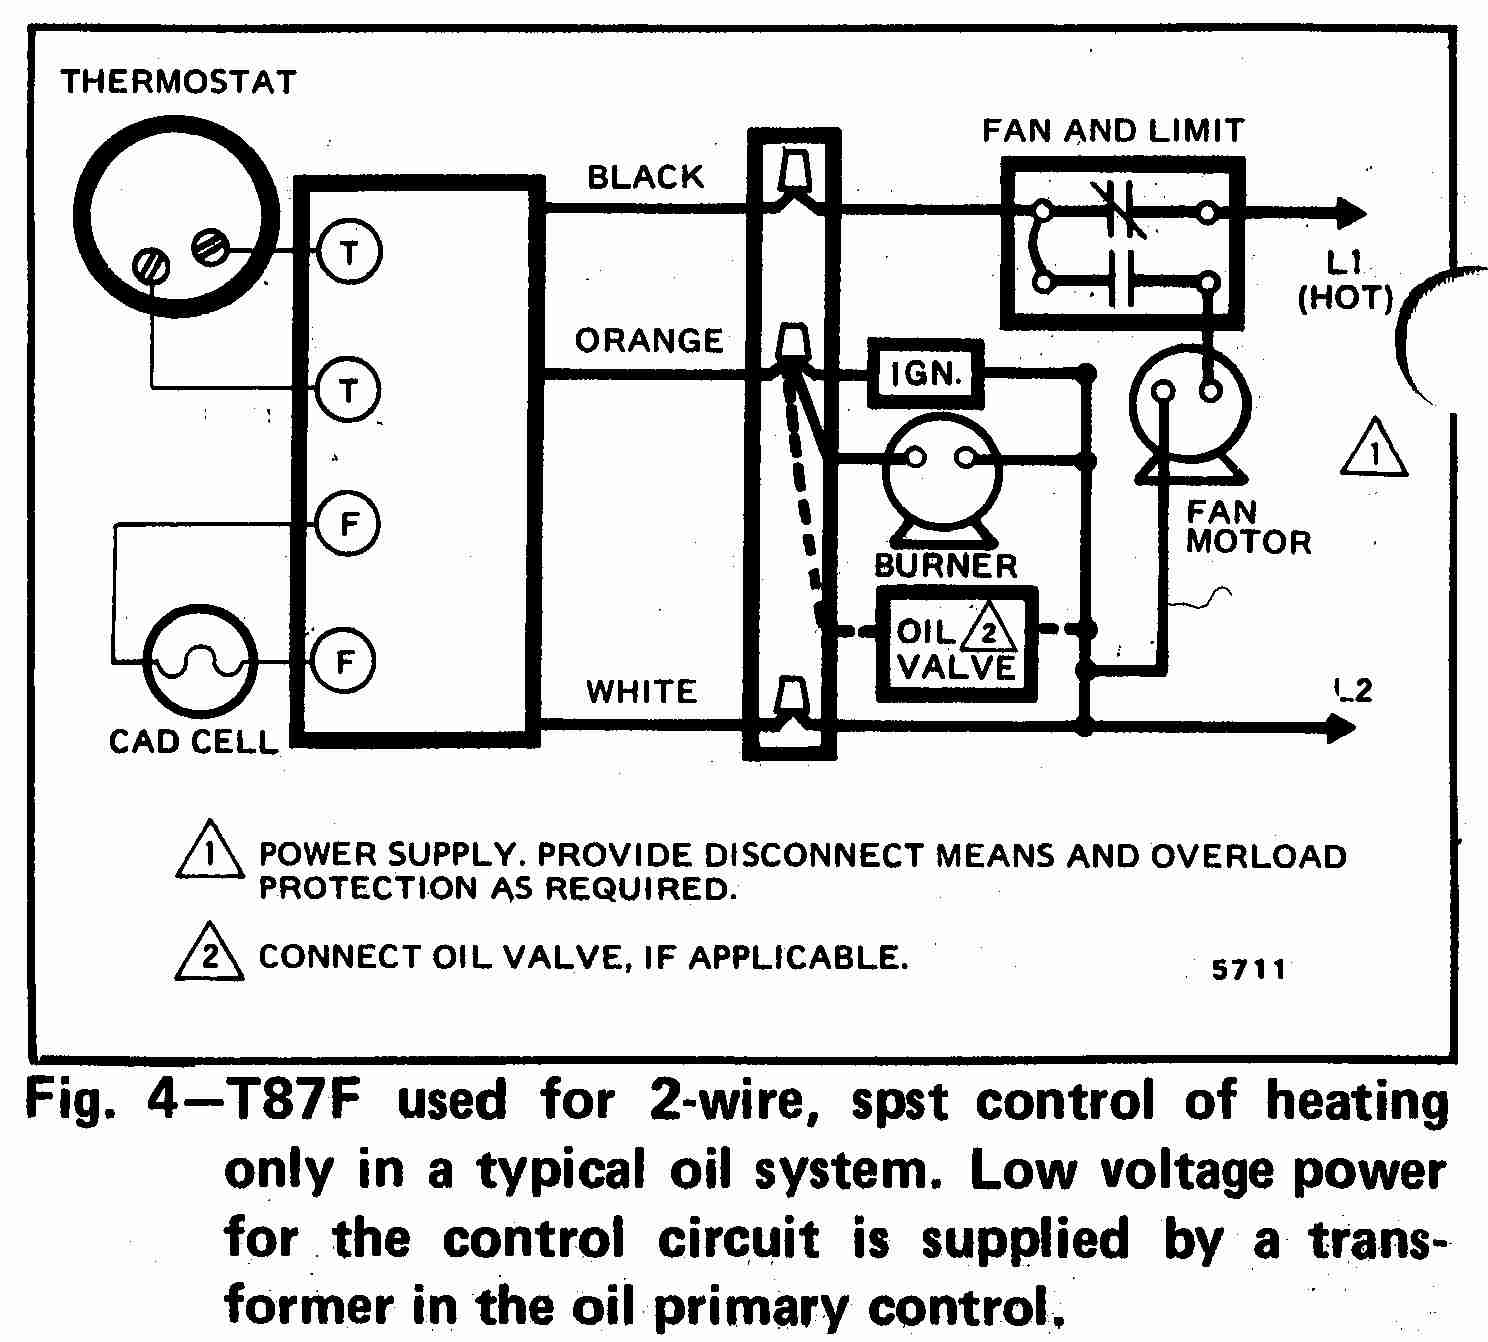 TT_T87F_0002_2W_DJF room thermostat wiring diagrams for hvac systems system wiring diagram at bayanpartner.co